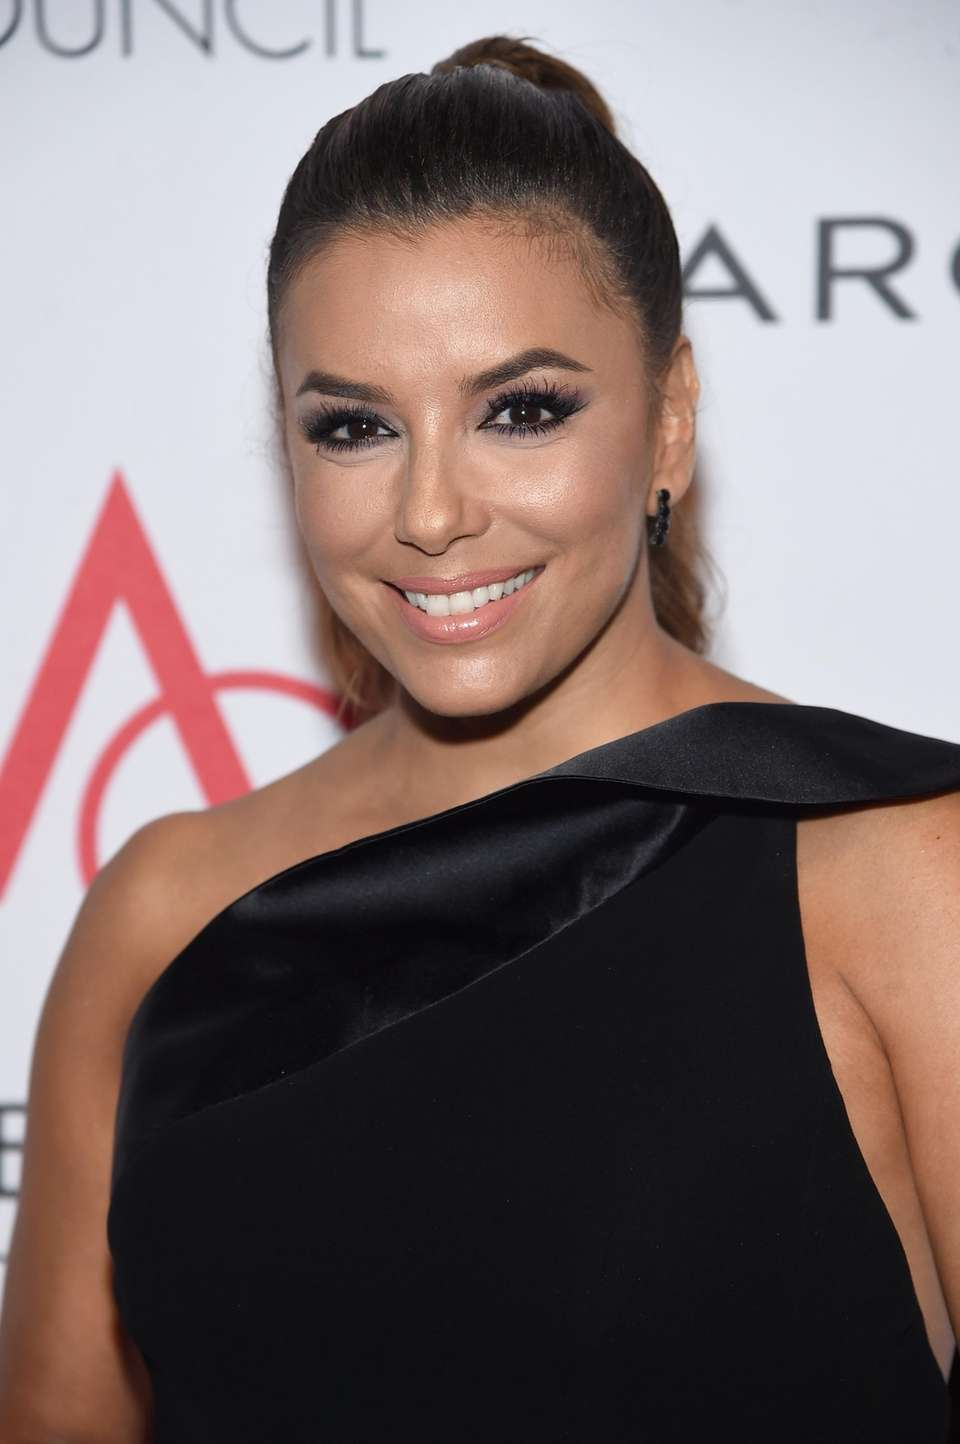 Eva Longoria at the Accessories Council's 21st Annual